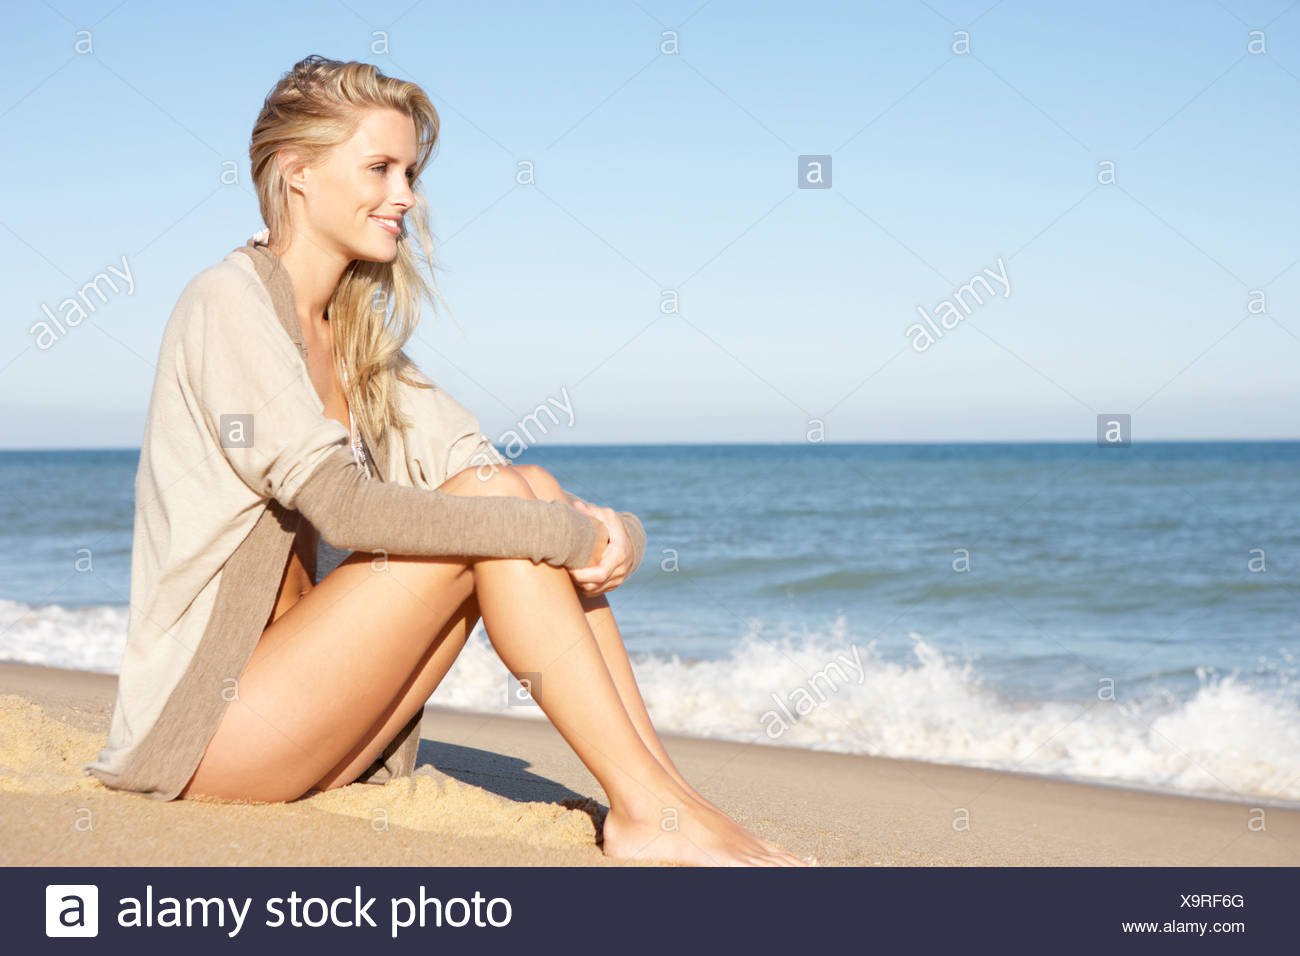 Young Woman Relaxing On Beach - Stock Image